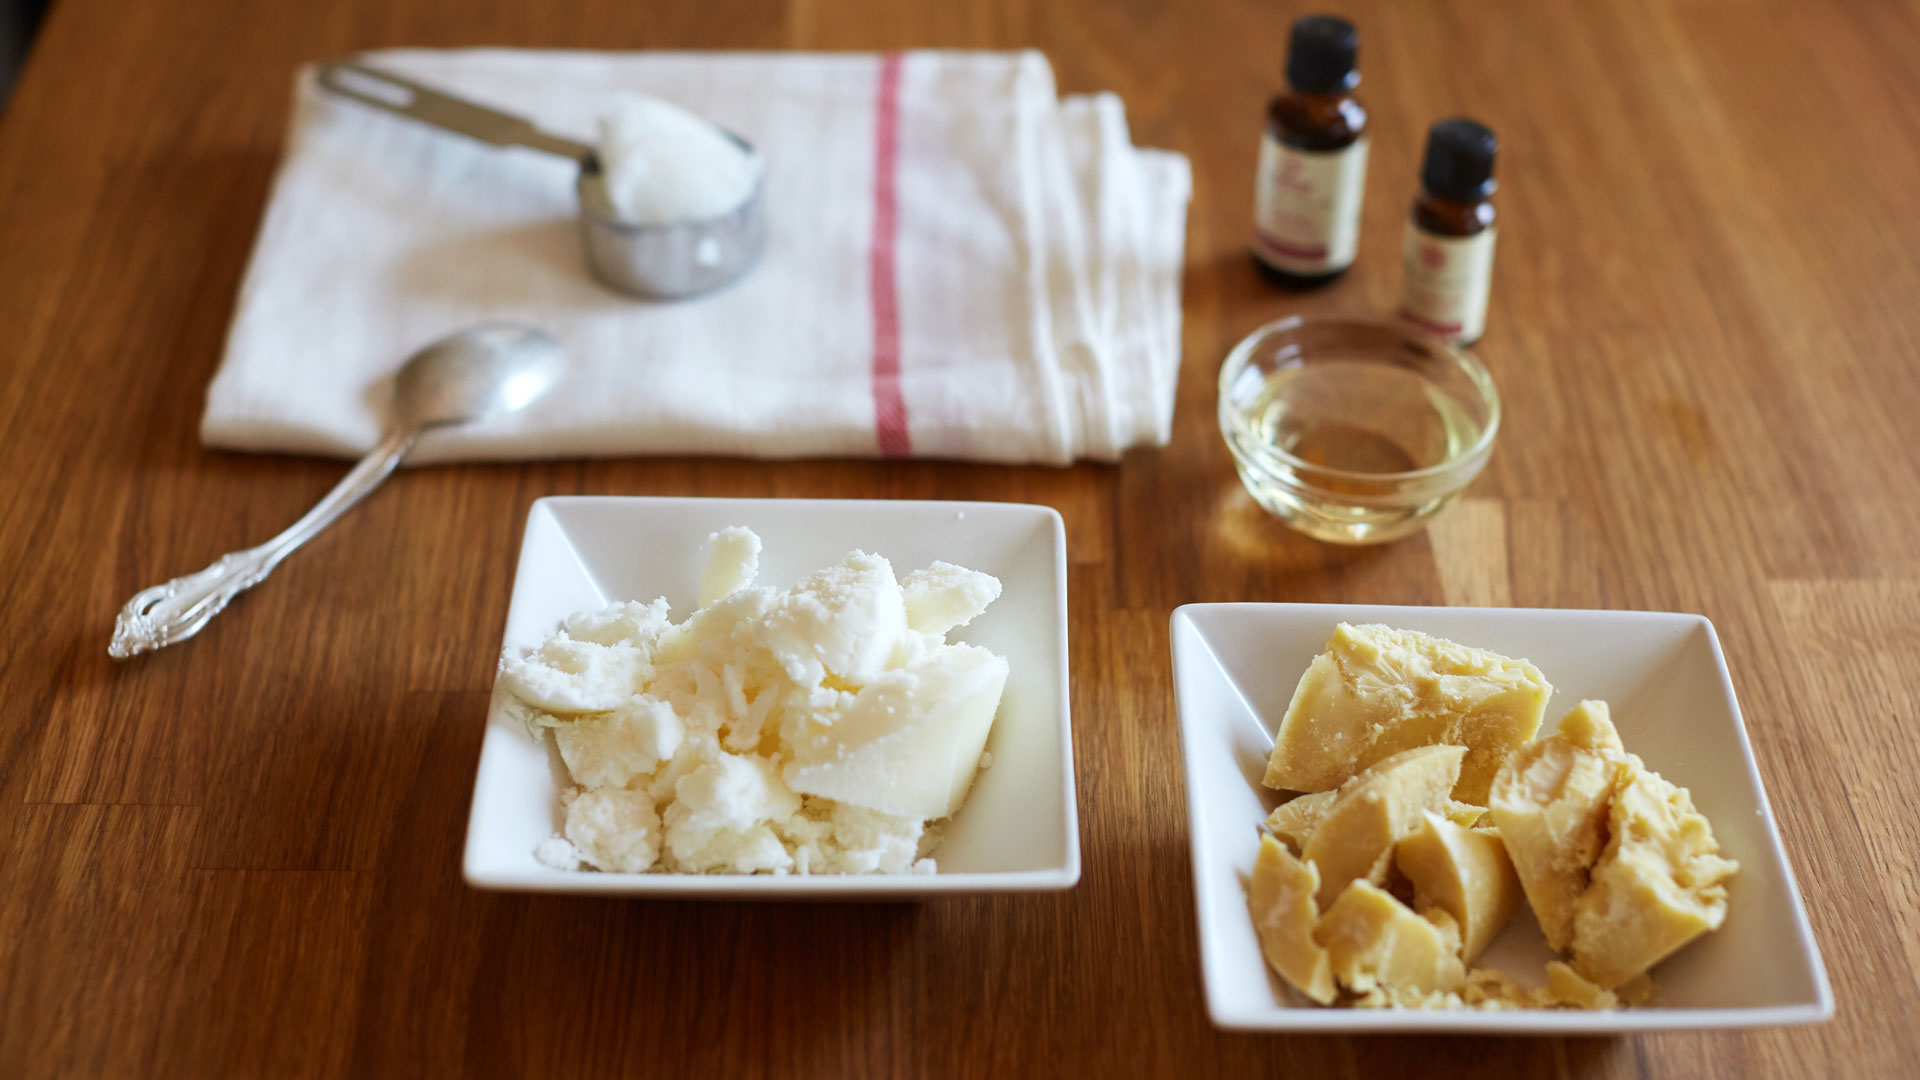 Ingredients for Alexandra Terry's Nourishing Whipped Body Butter recipe